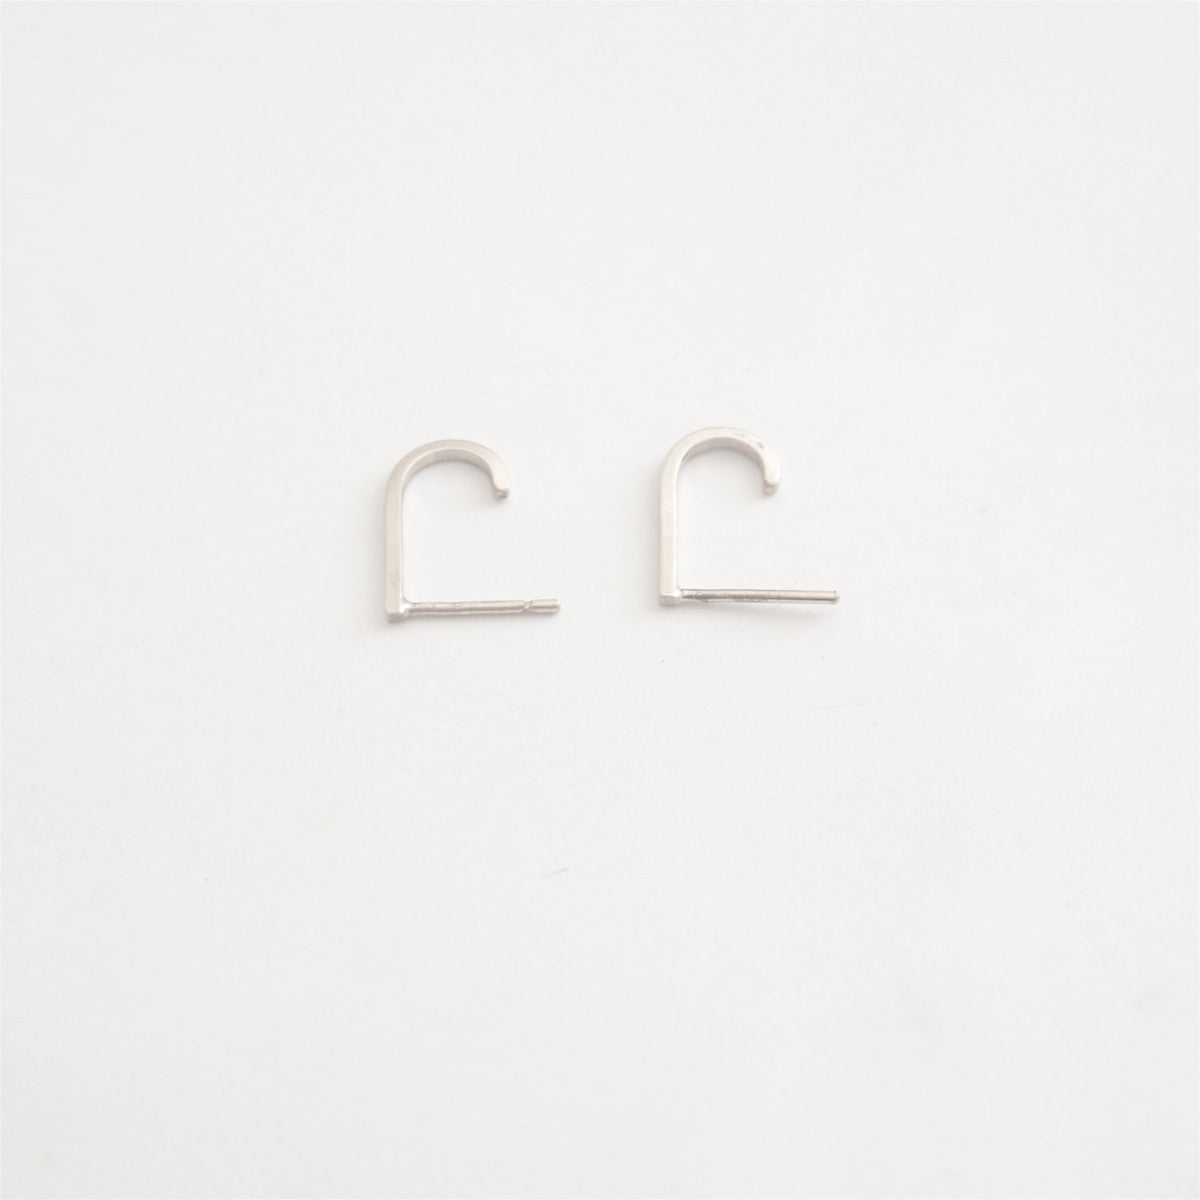 Contemporary and Distinctive - Hand-Crafted Square Suspender Earrings - 0229 - Virginia Wynne Designs